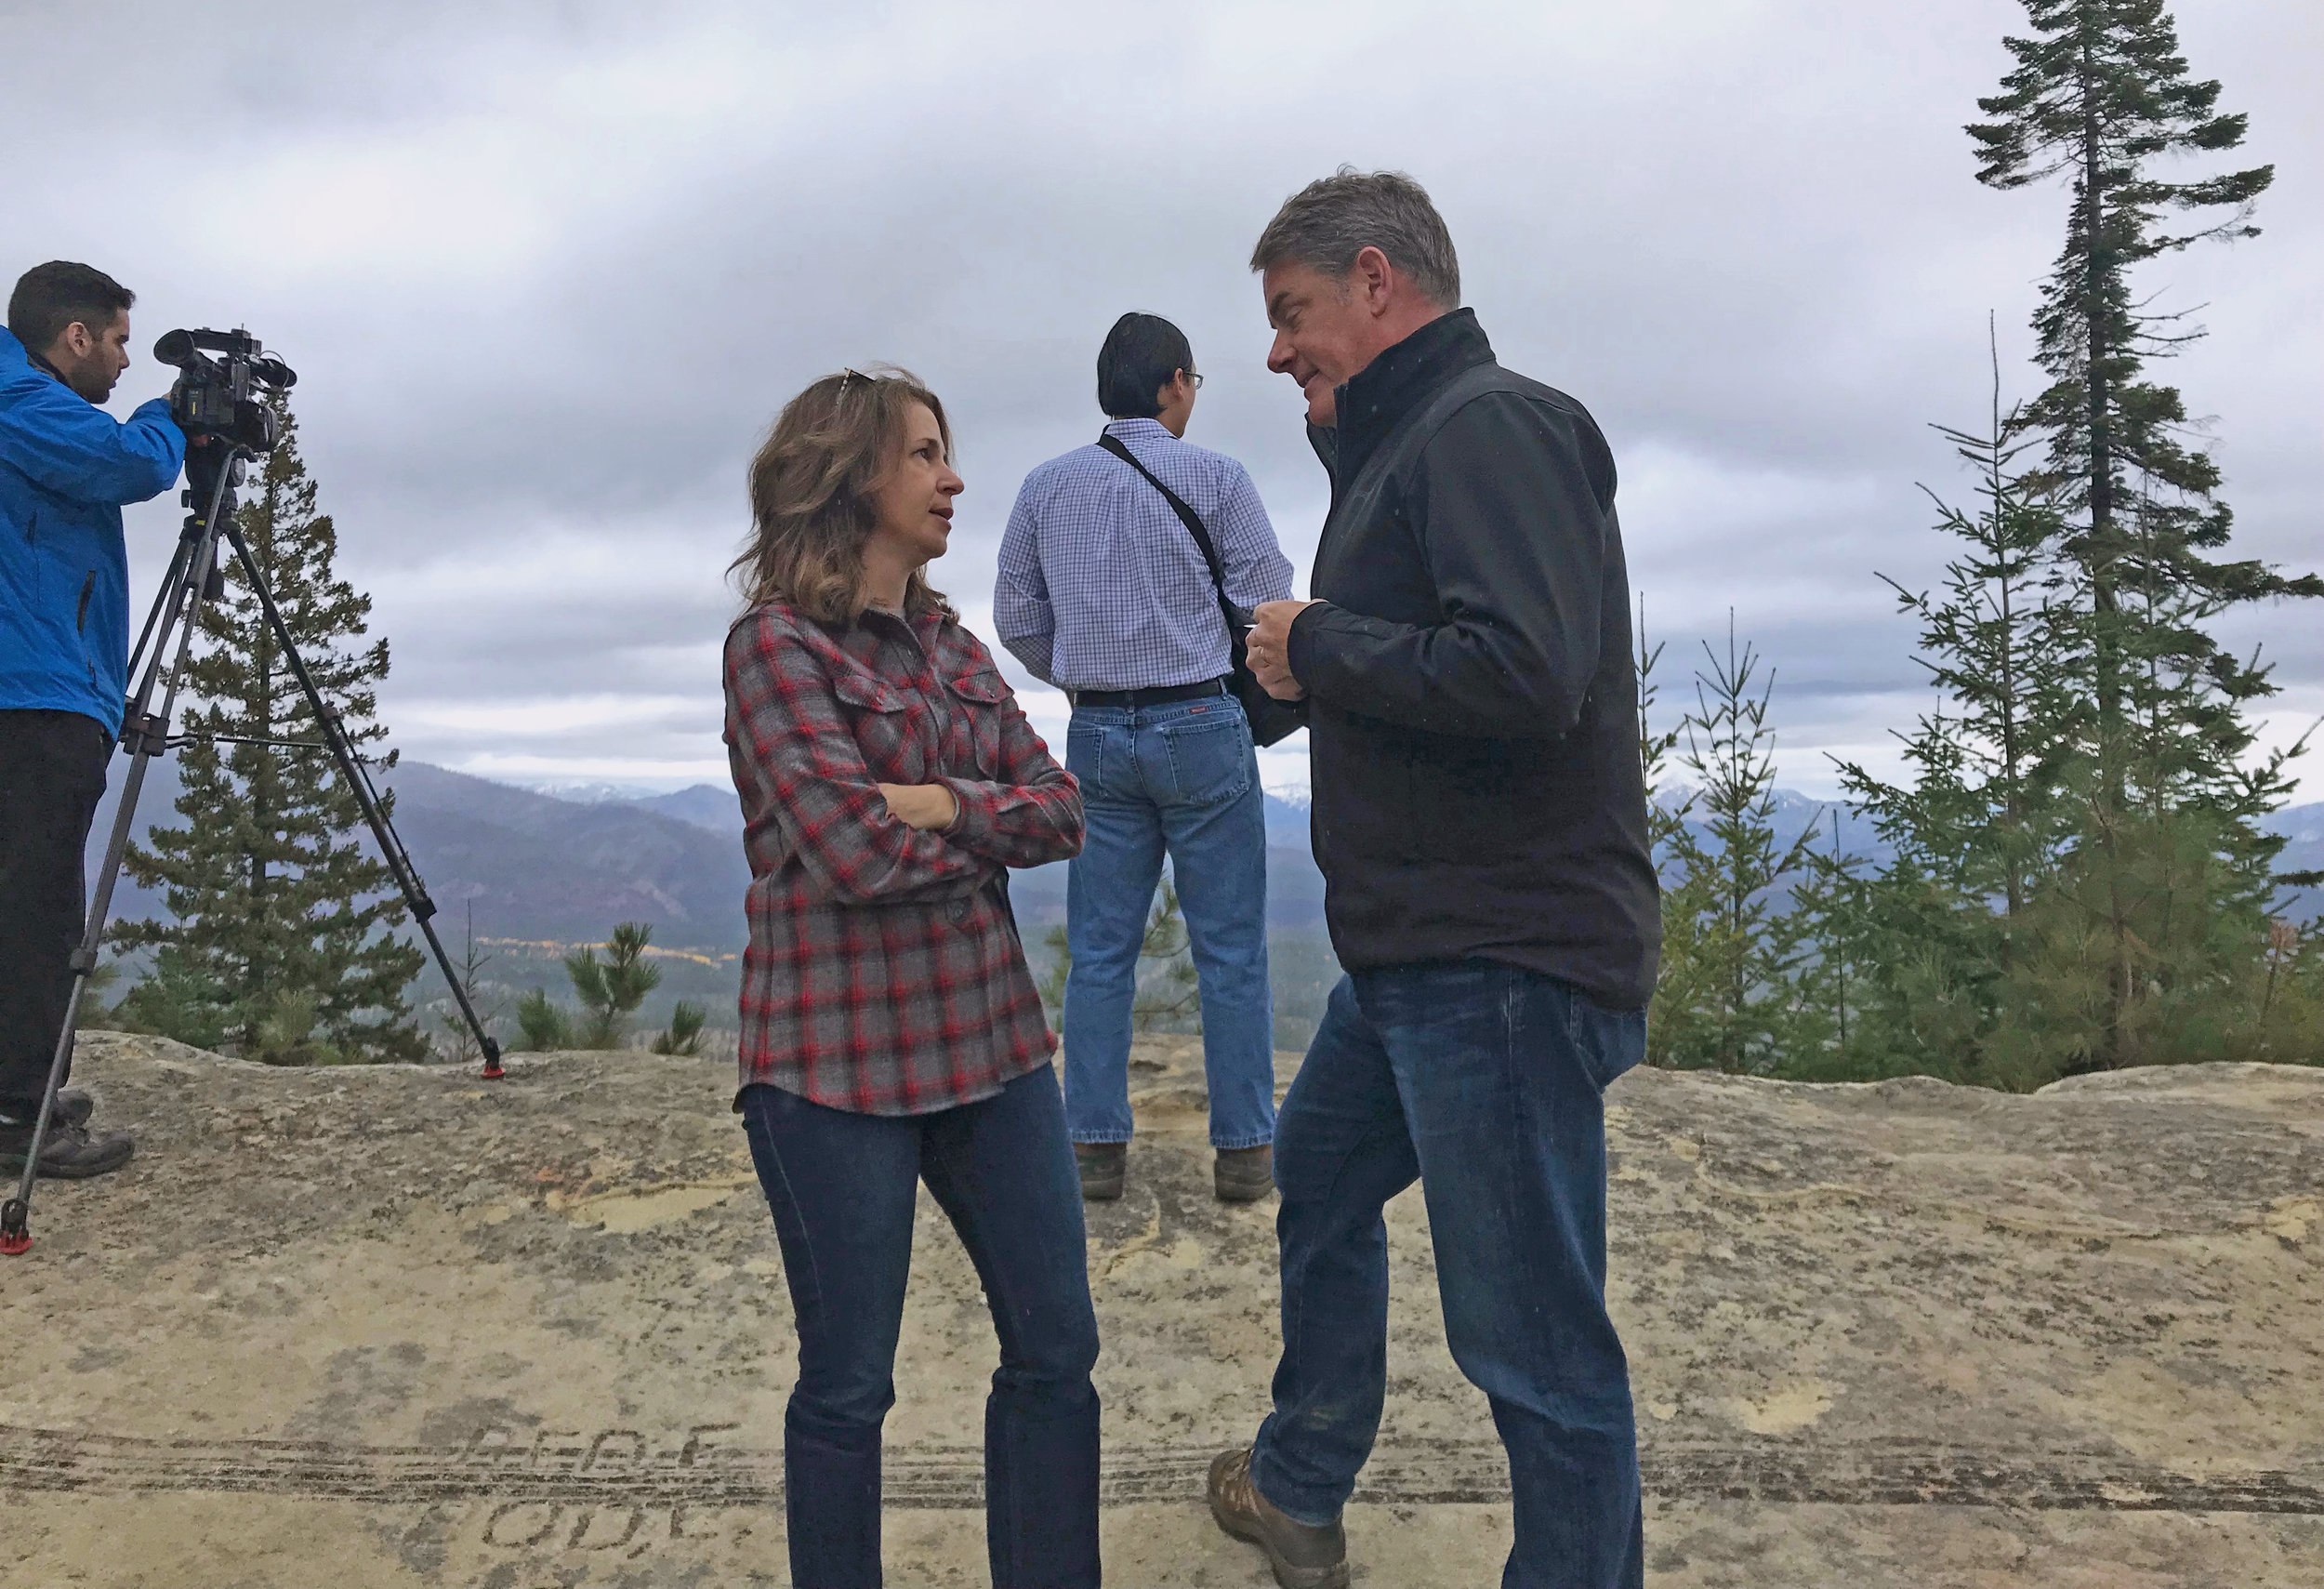 State Public Lands Commissioner Hilary Franz chats with James Schroeder, Director of Forest Conservation Partnerships for the Conservancy's Washington program, on Cle Elum Ridge overlooking the Teanaway Community Forest and the site of the Jolly Mountain Fire. Photo © Scott Richards/TNC